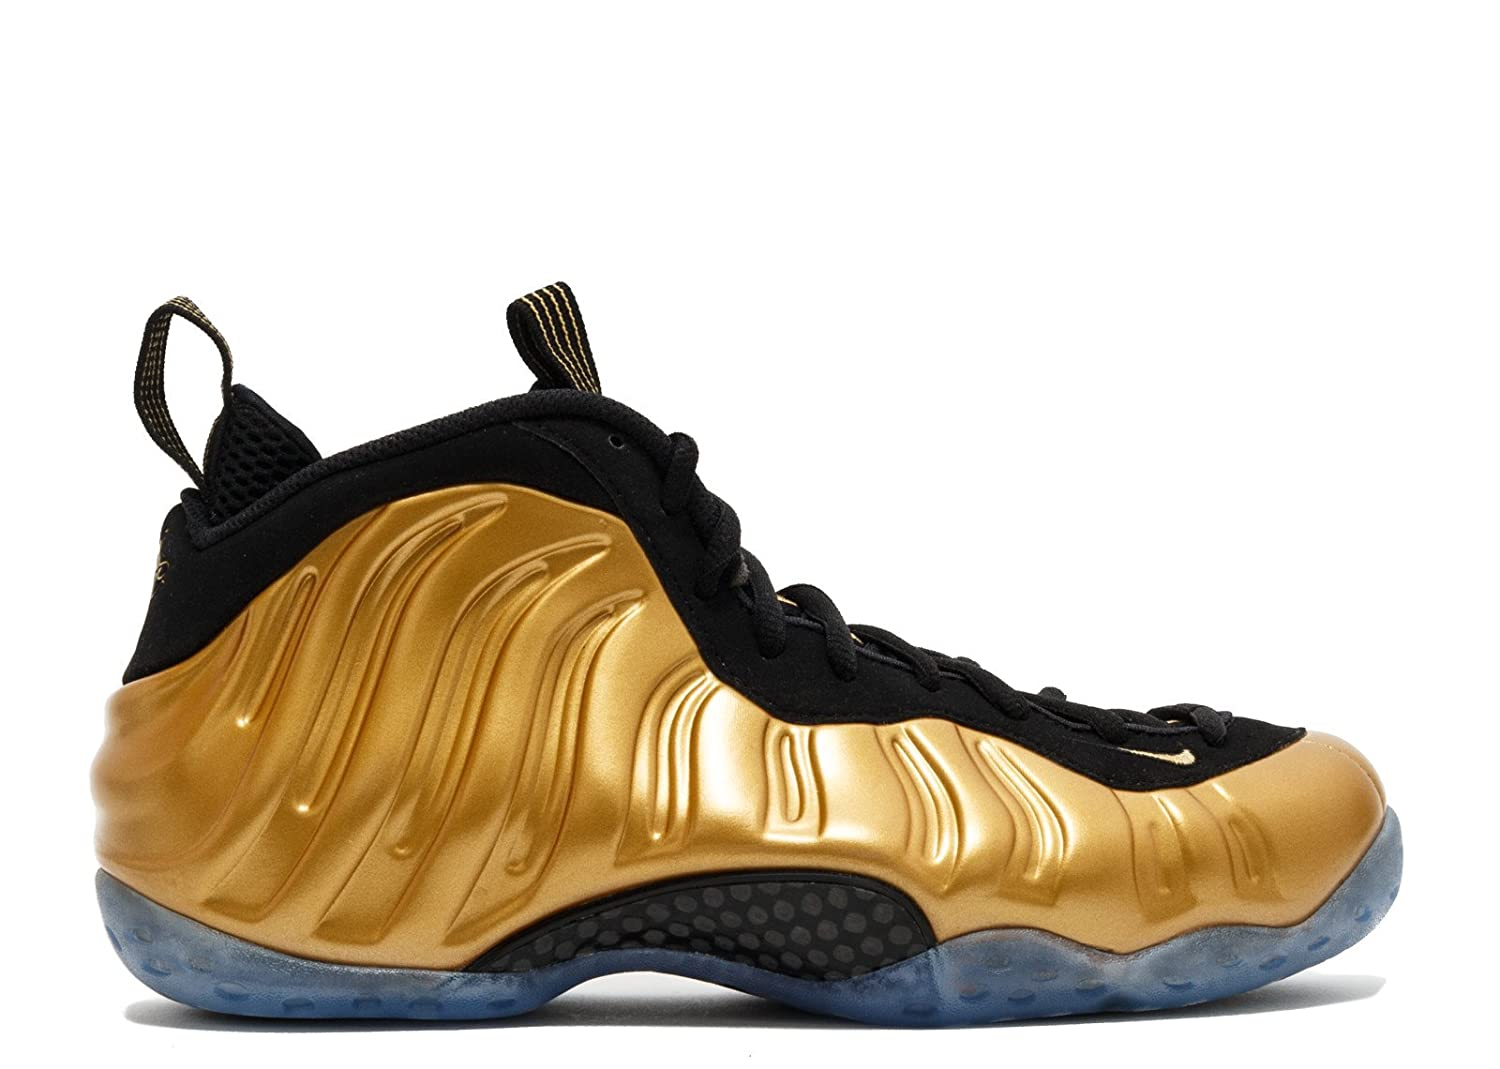 huge discount 895e5 177b0 Nike AIR Foamposite ONE - 'Metallic Gold' - 314996-700